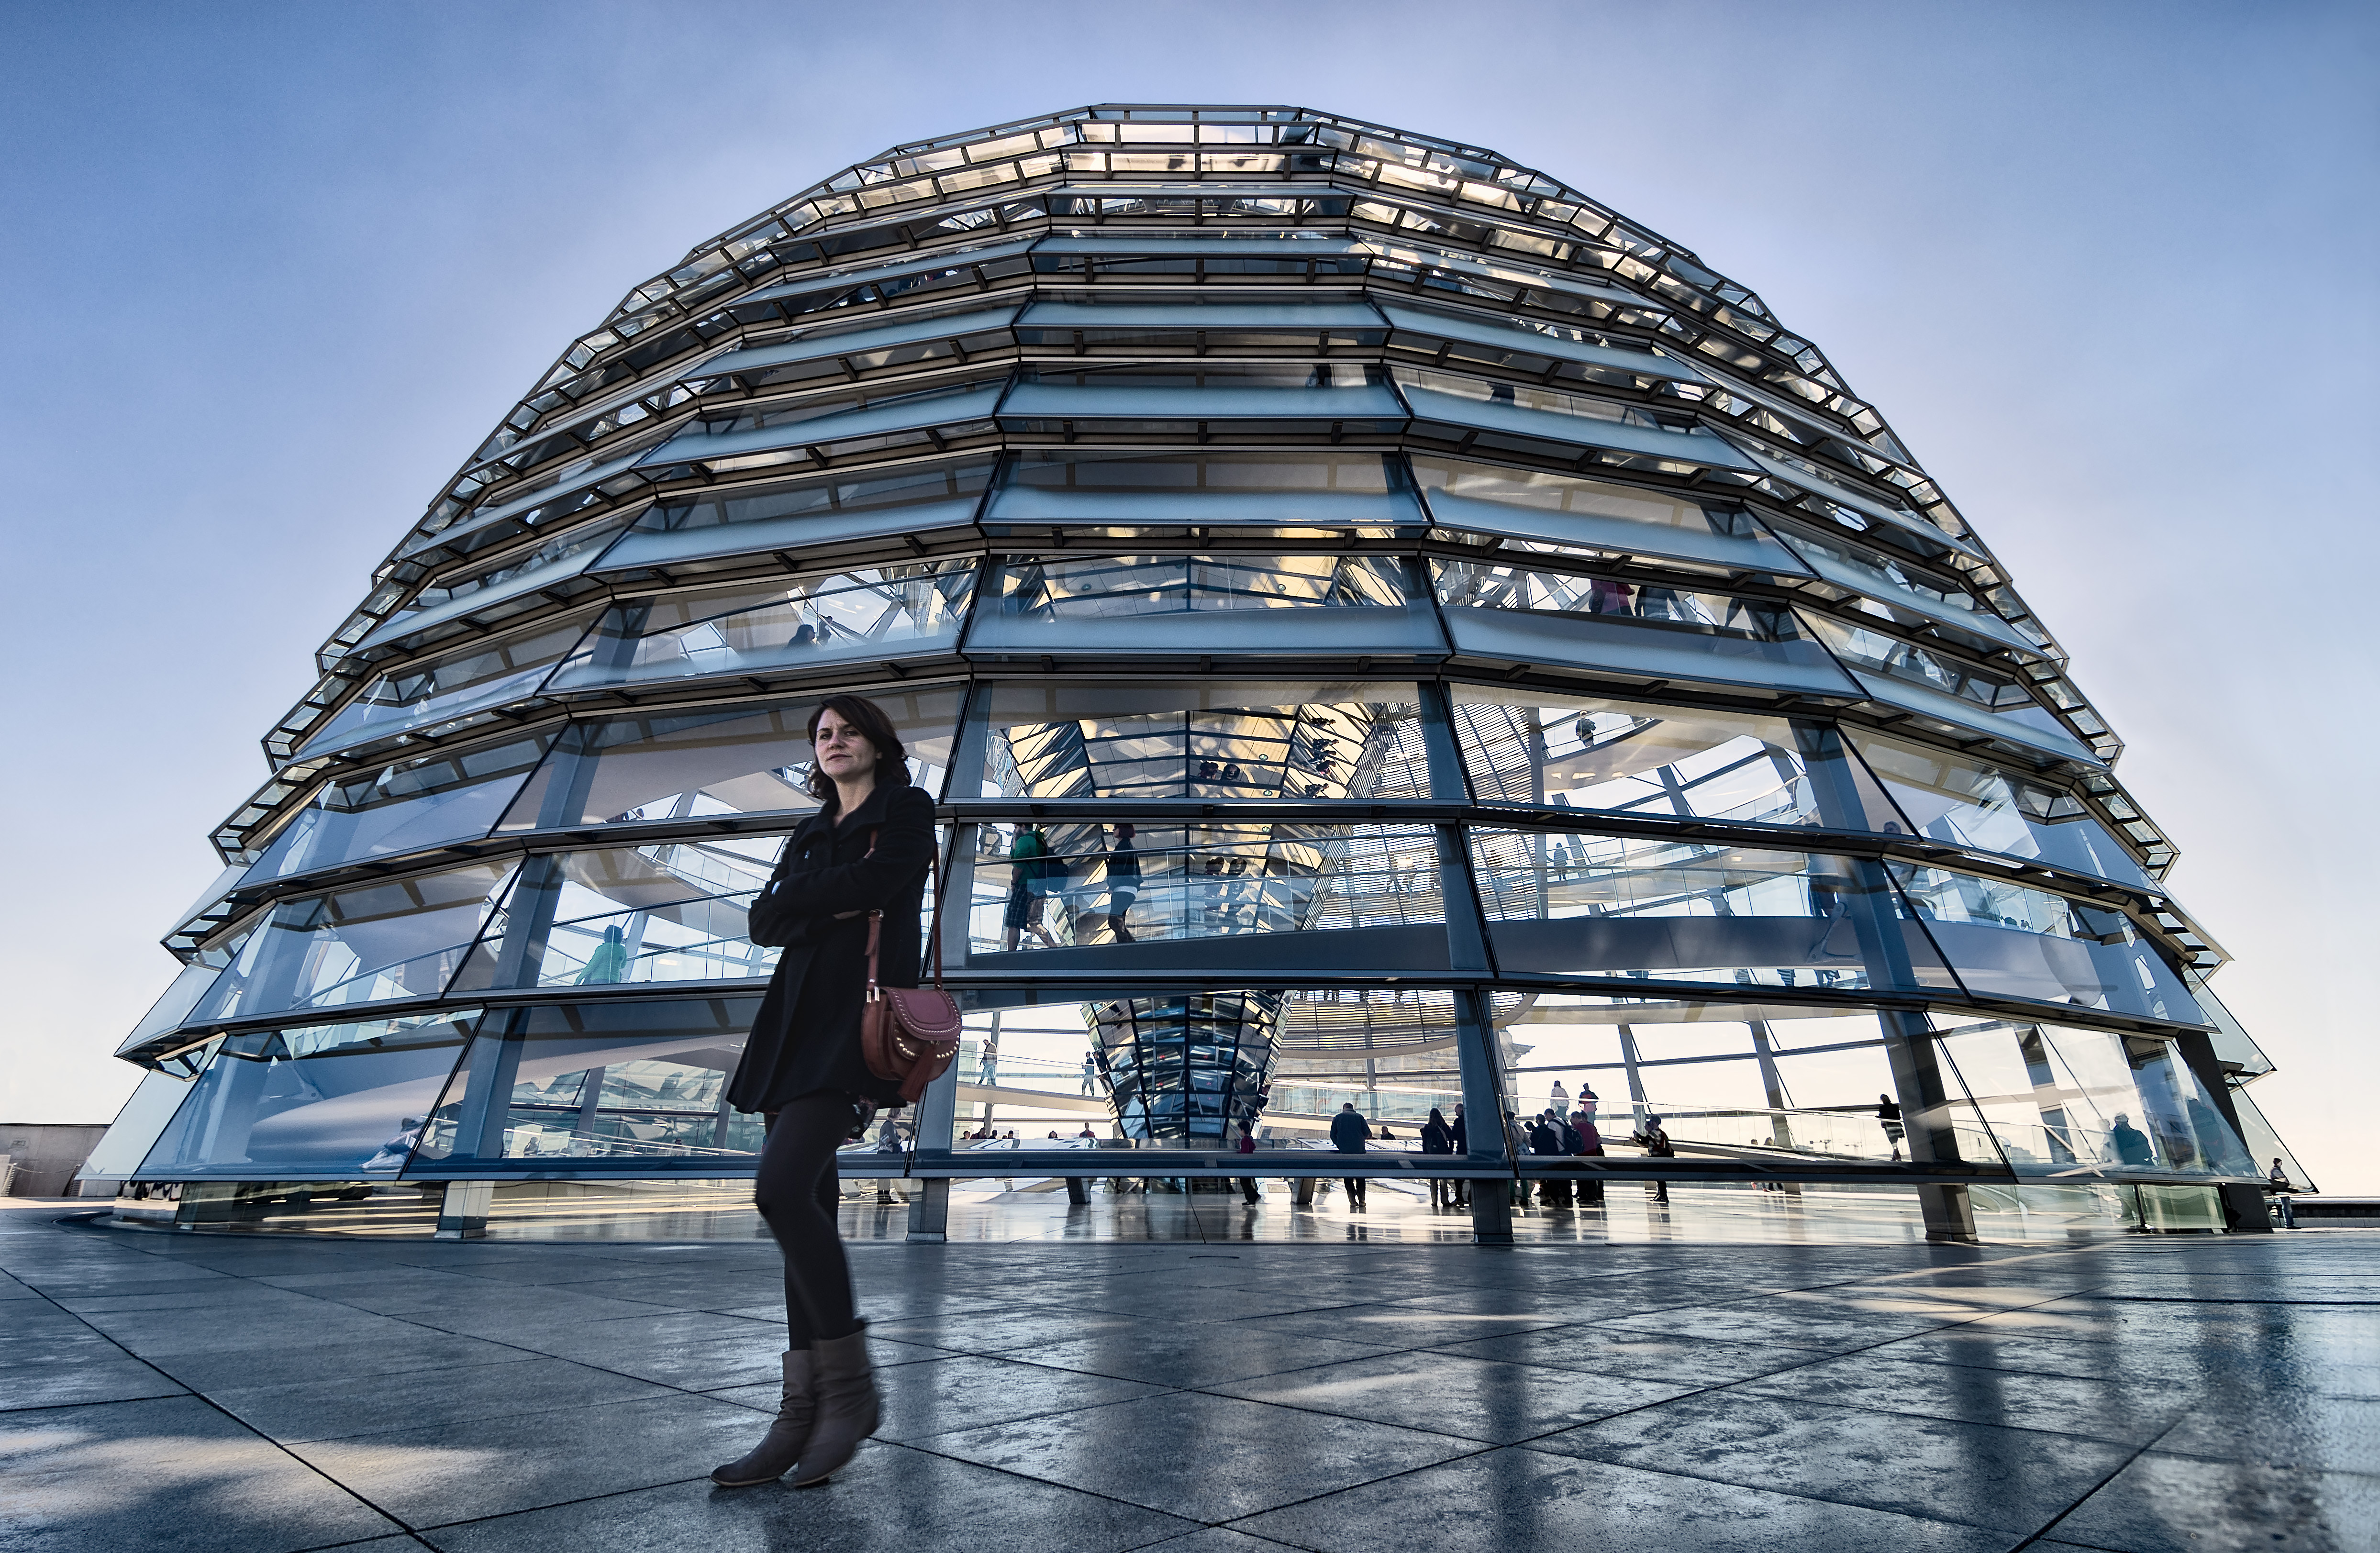 Morning at The Reichstag